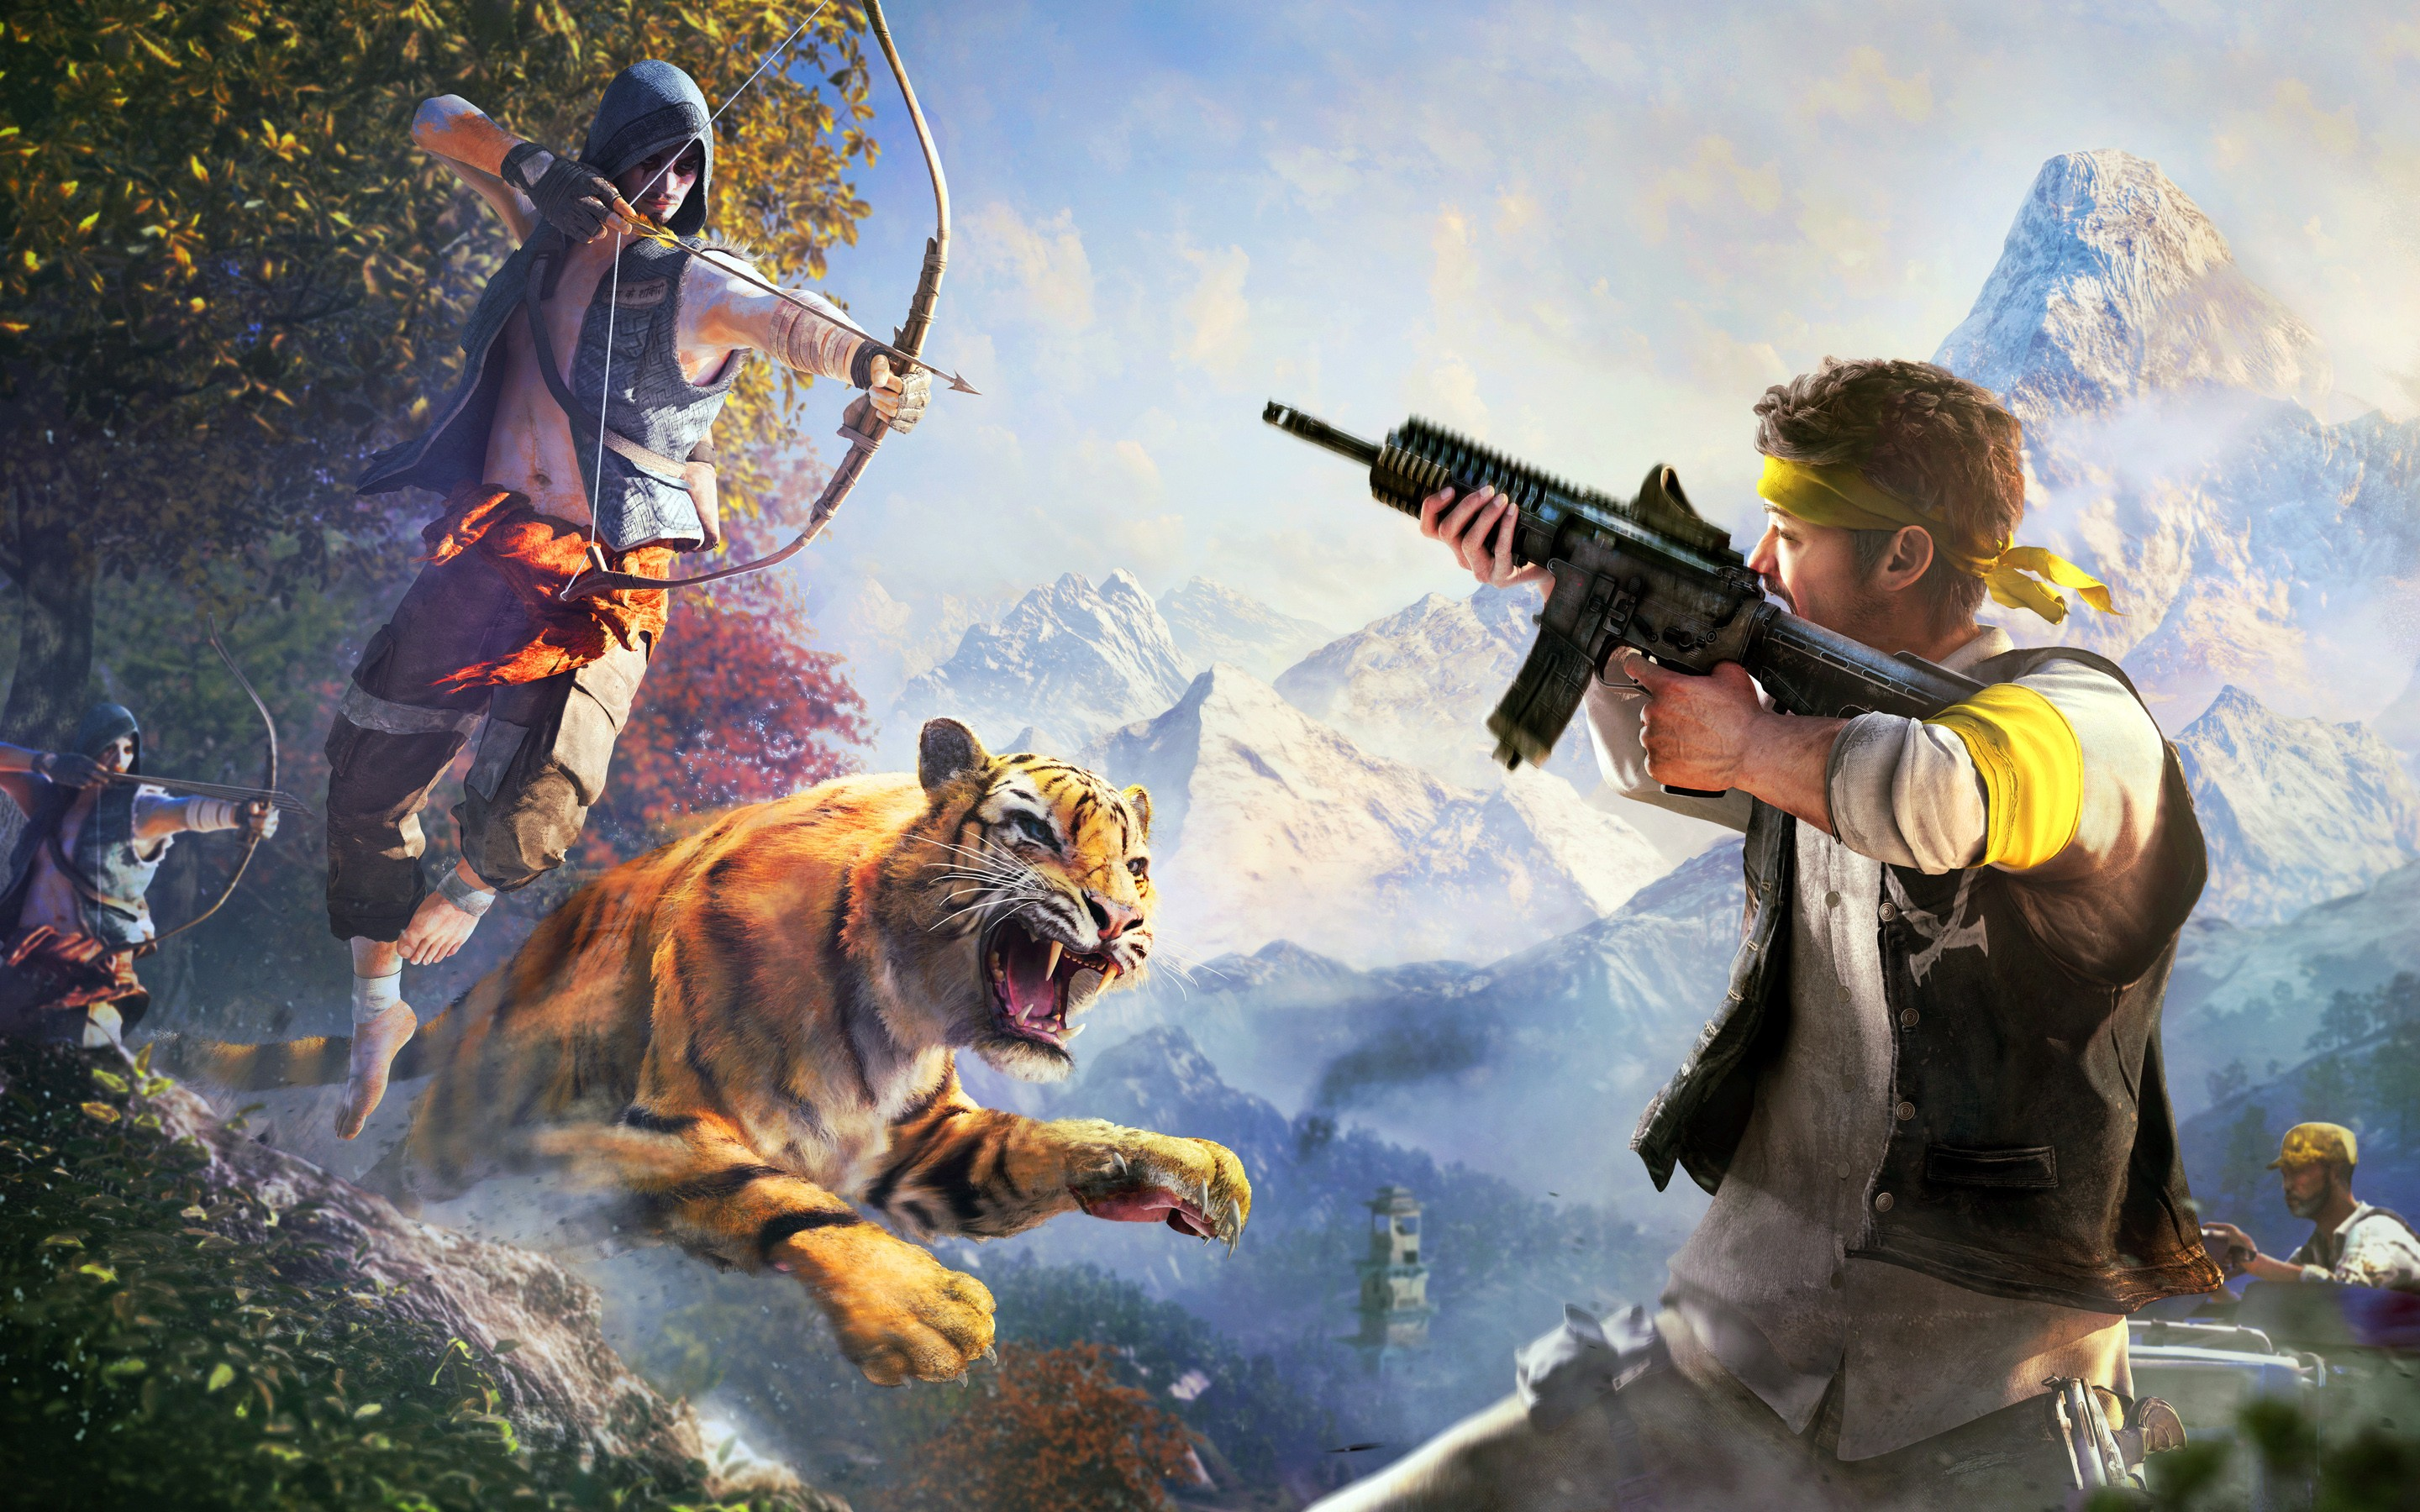 Far cry 4 game hd games 4k wallpapers images - 4k wallpapers games ...